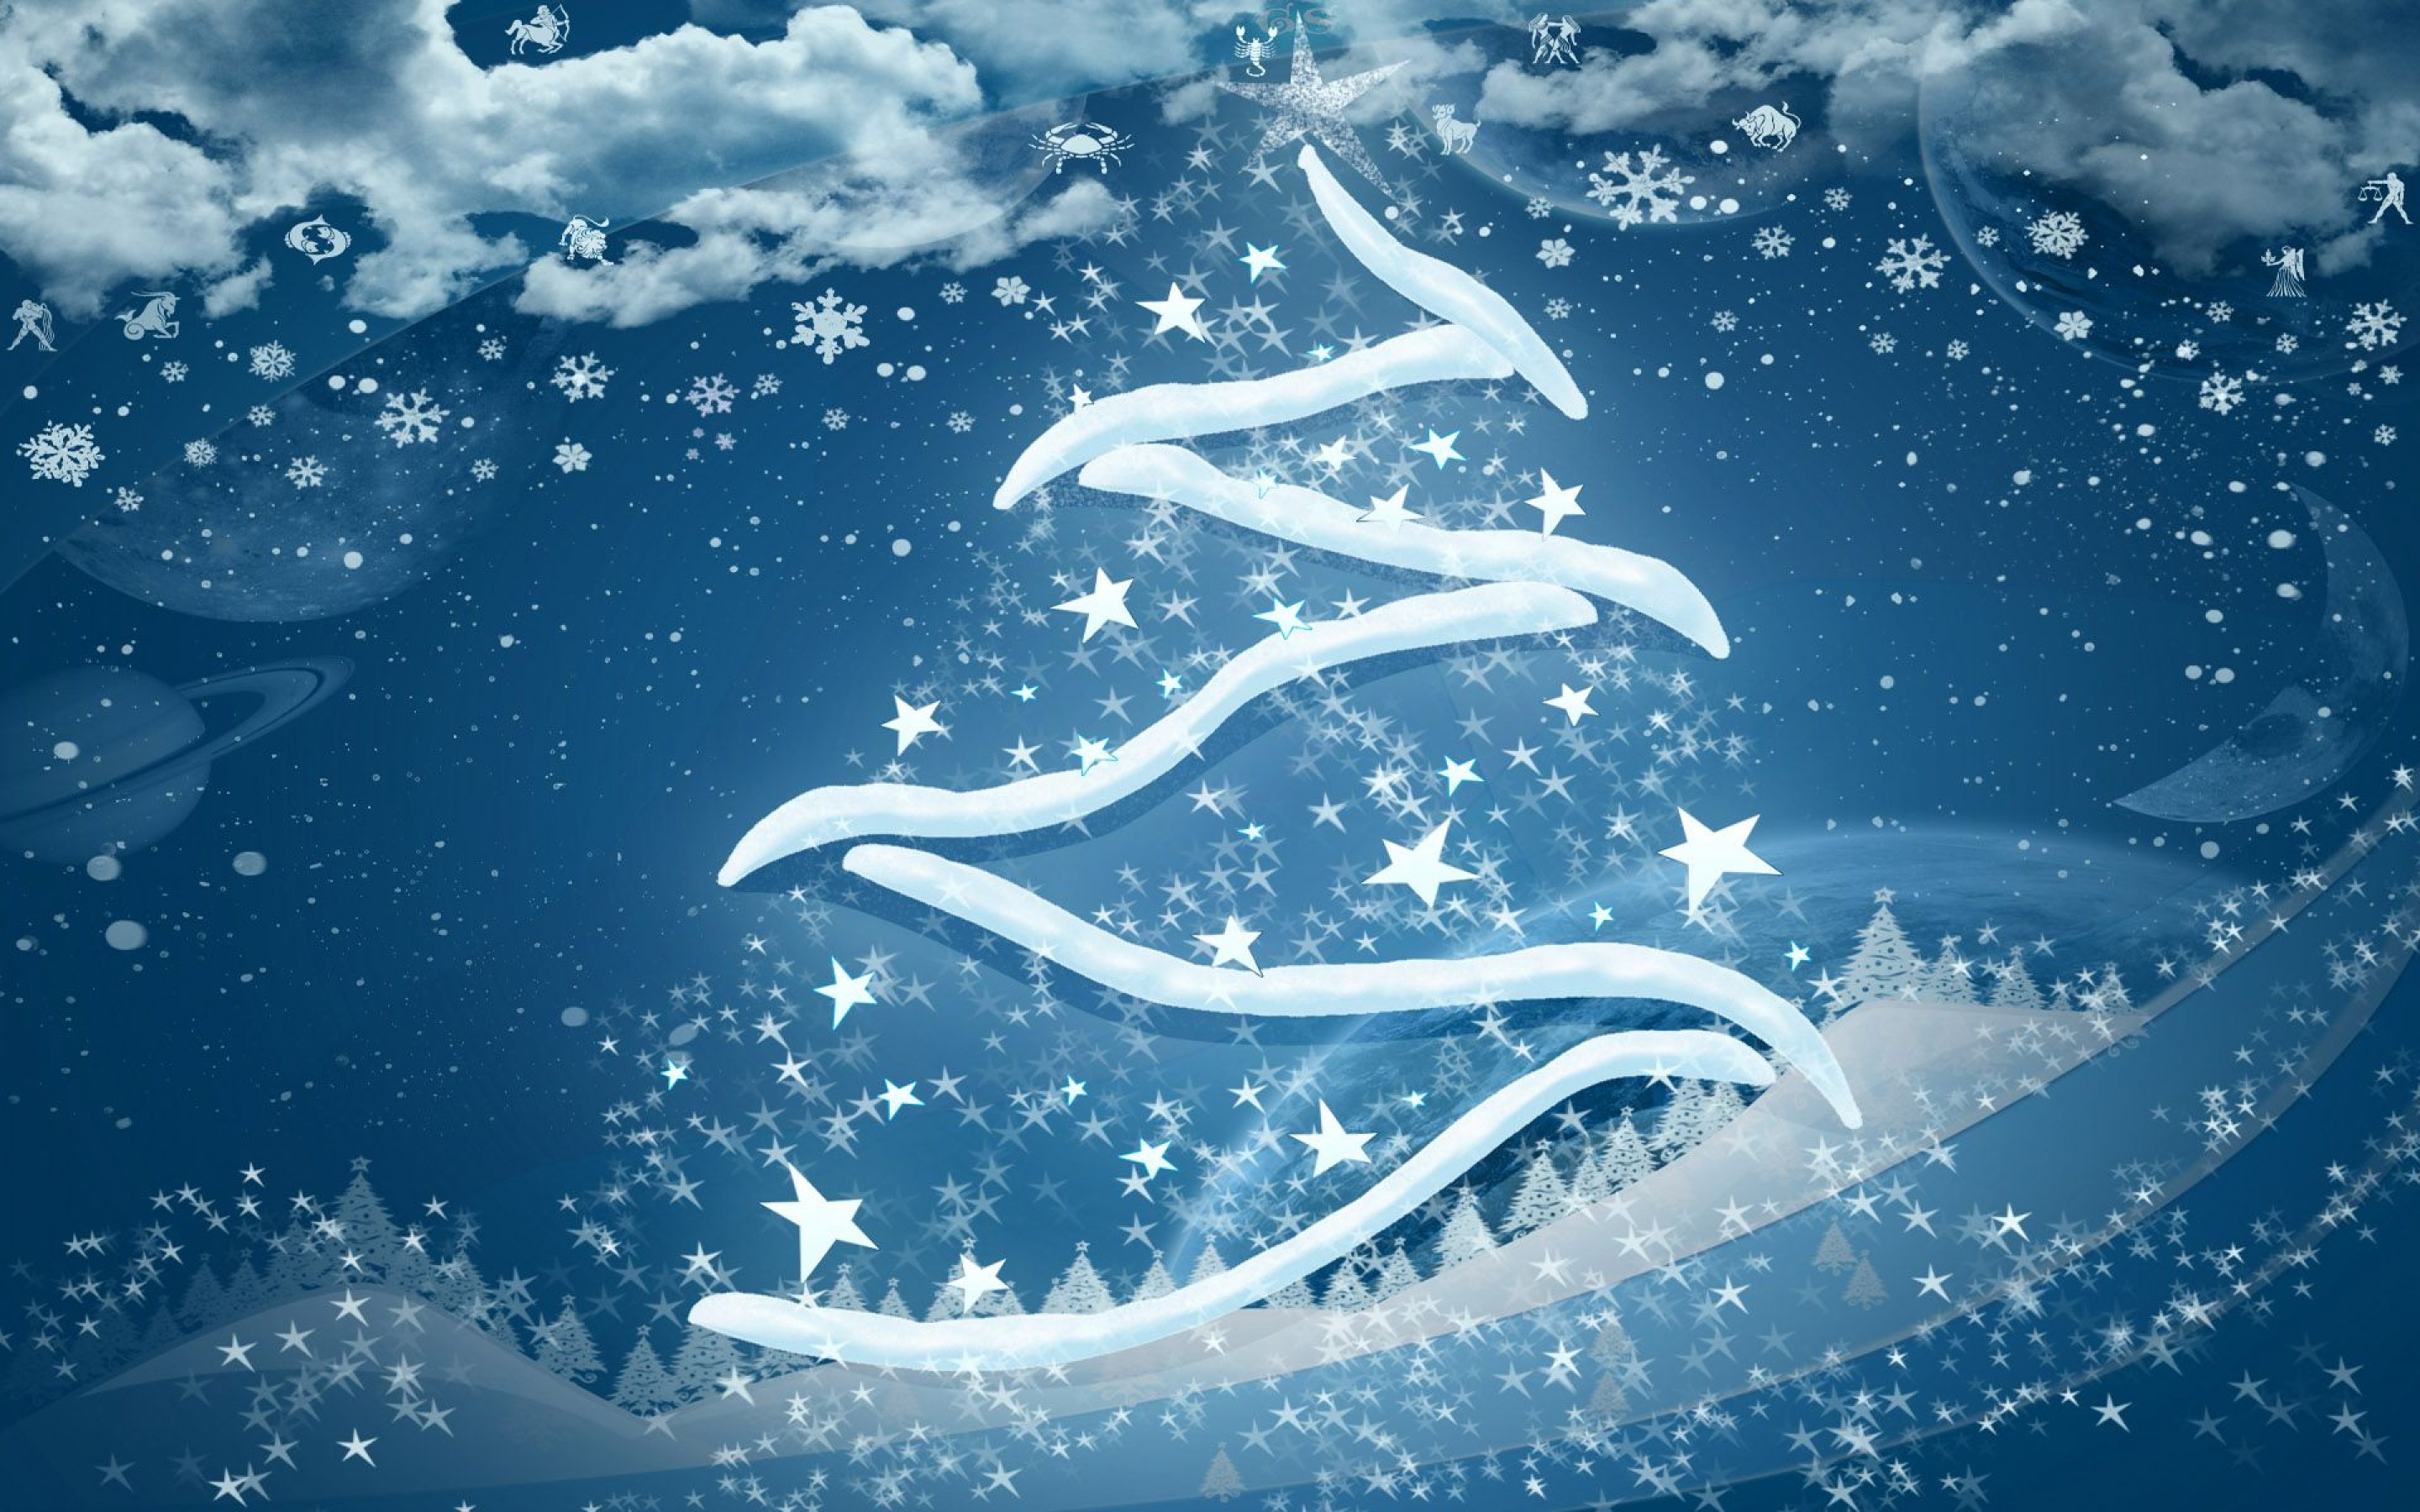 Hd Christmas Wallpapers Wallpaper